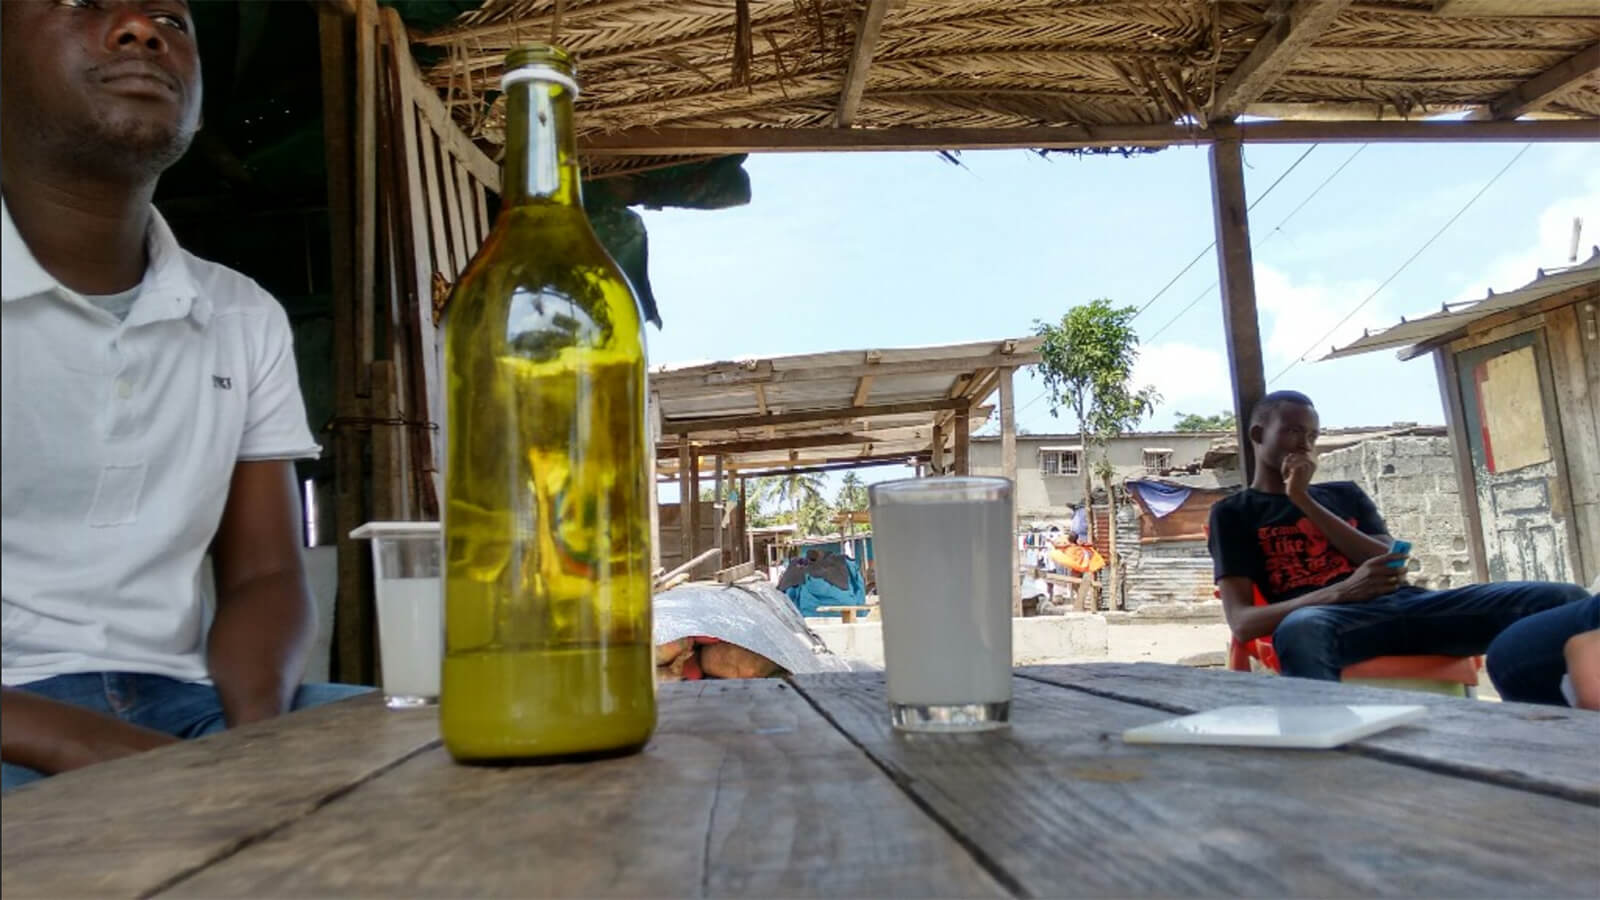 Drinking banji with locals in the Ivory Coast, one of the unique traditional alcoholic beverages to try while traveling abroad